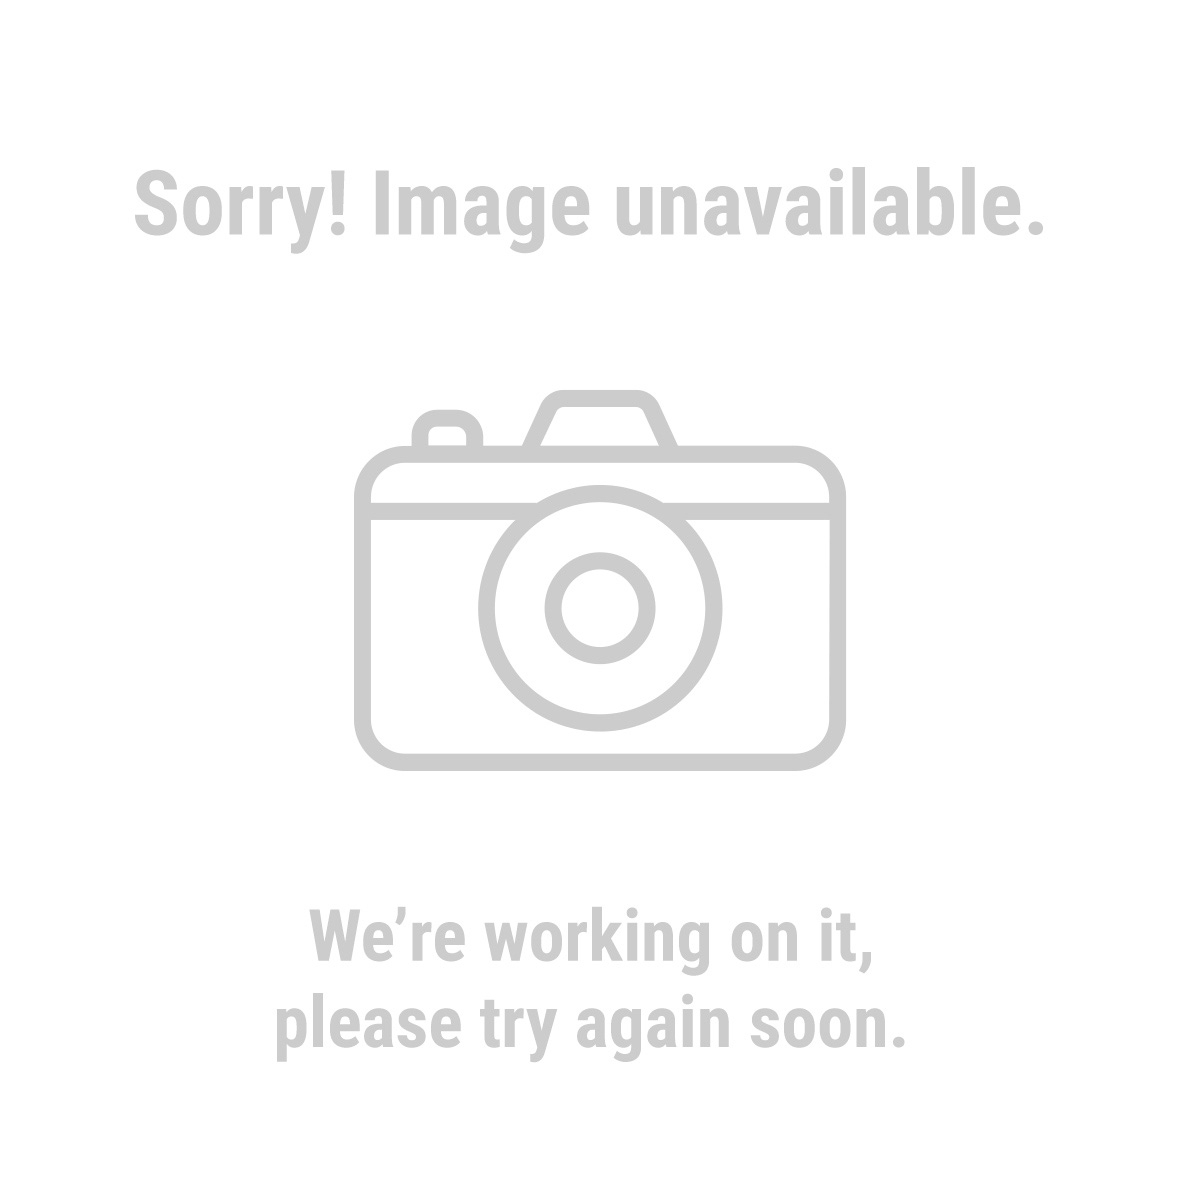 Central Machinery® 97181 4 in. x 36 in. Belt / 6 in. Disc Sander